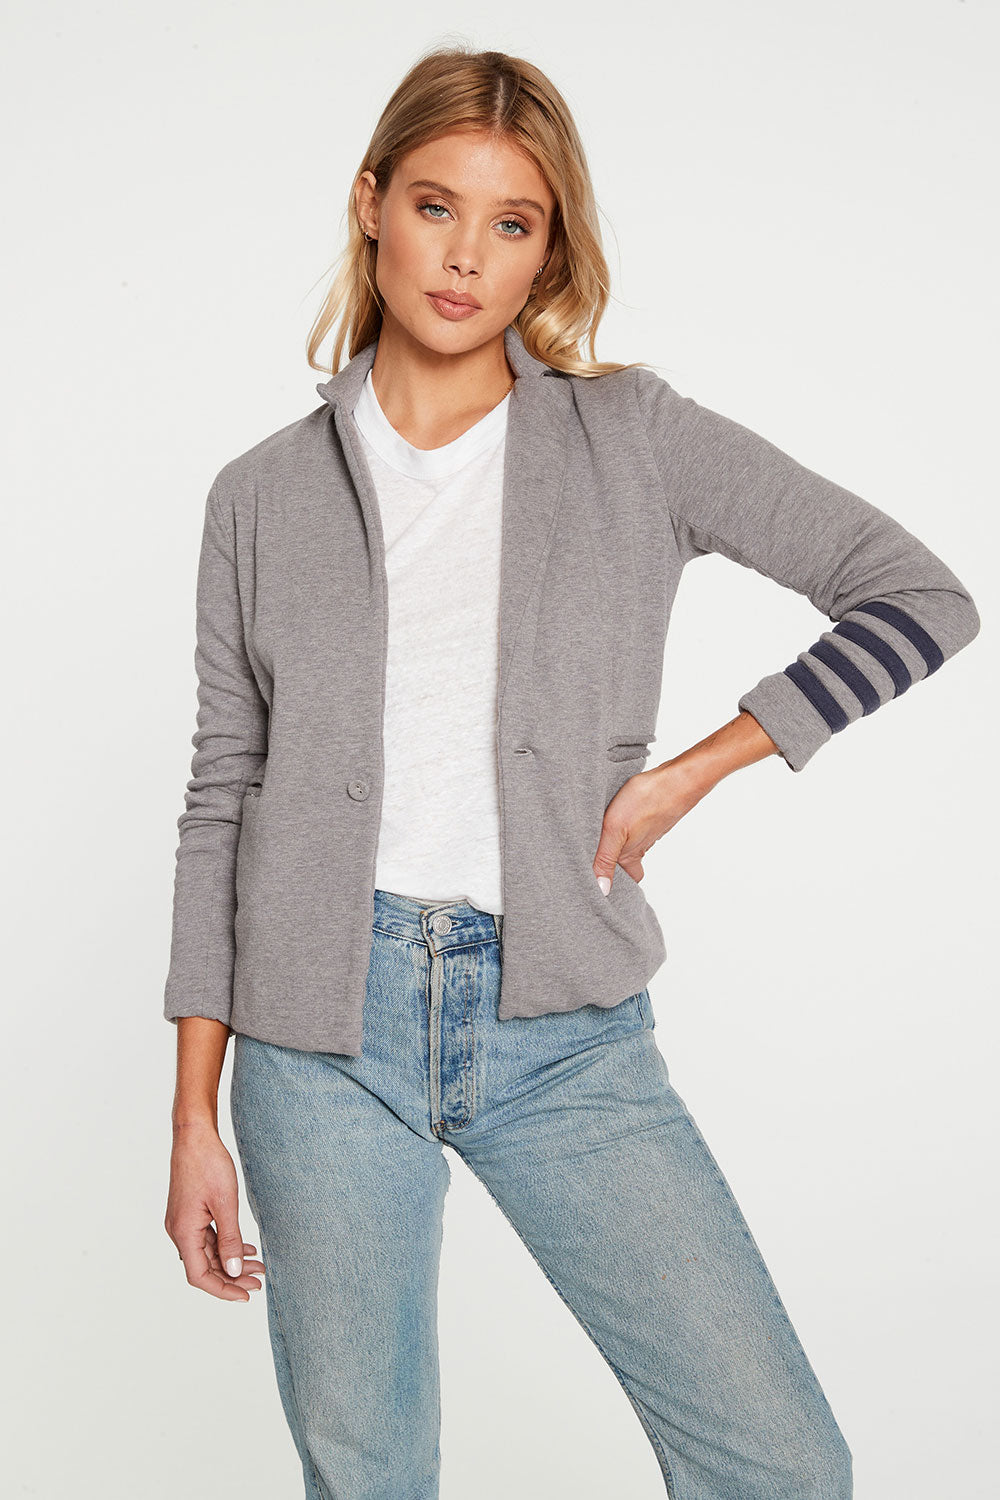 Cashmere Fleece Long Sleeve Blazer with Strappings WOMENS - chaserbrand